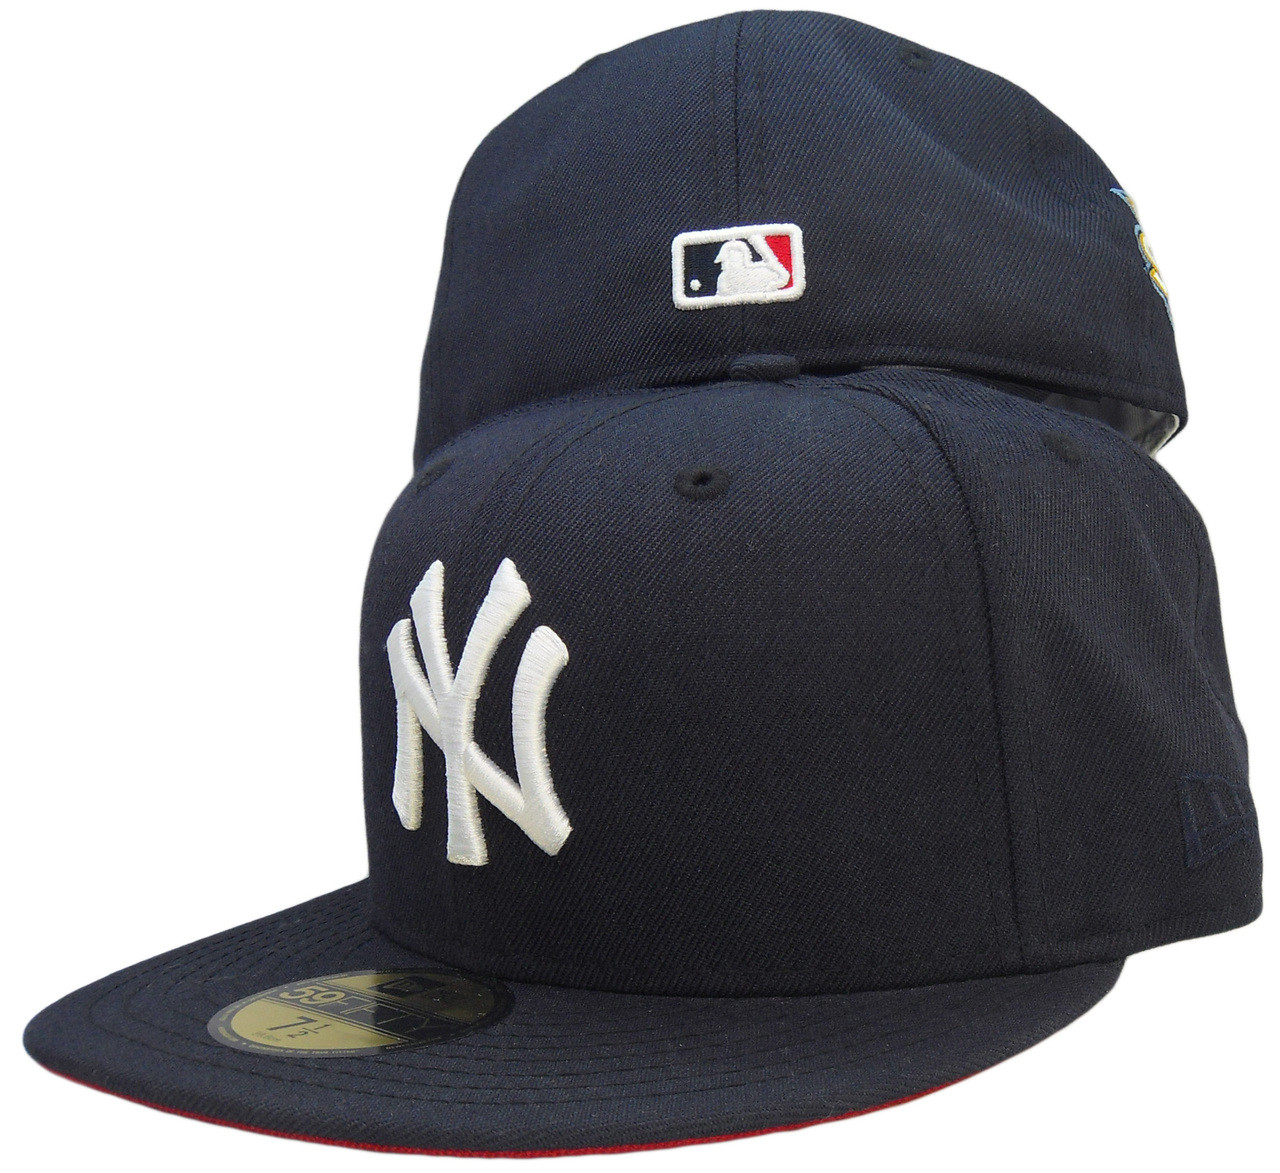 9385866a New York Yankees New Era 59Fifty Fitted Hat - Navy Blue, White, Red -  ECapsUnlimited.com